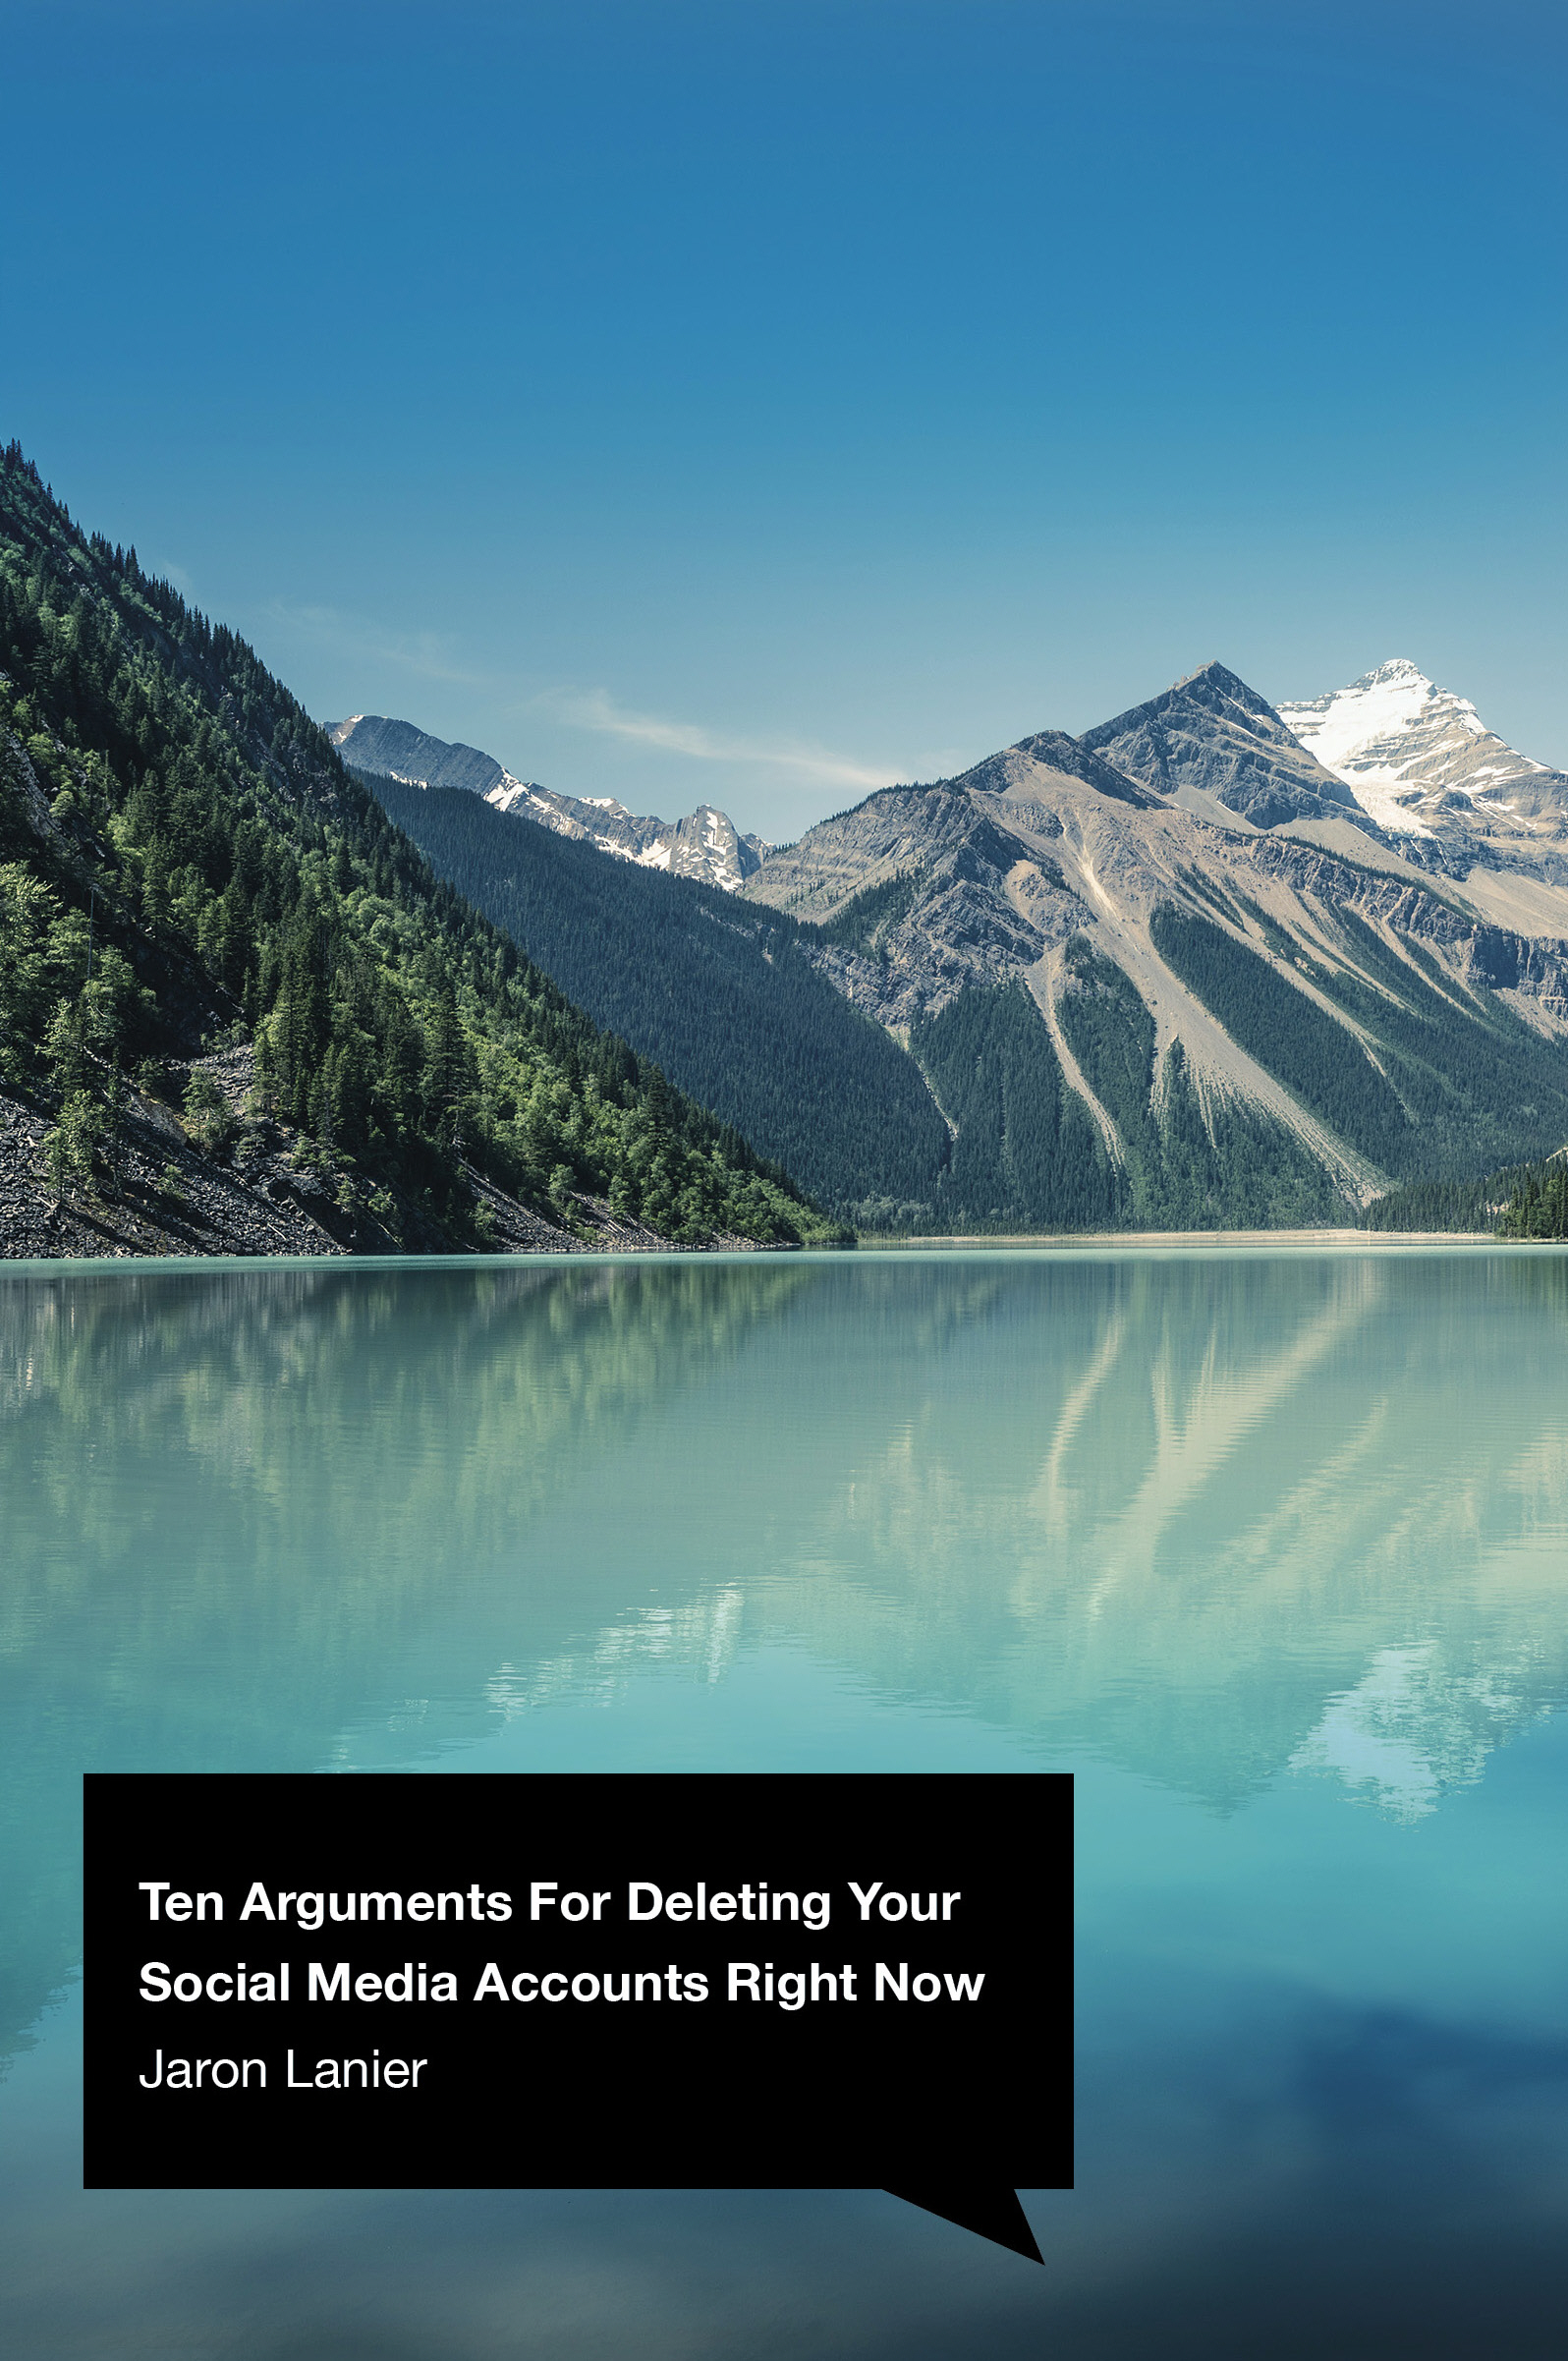 Web resources related to the book Ten Arguments for Deleting Your